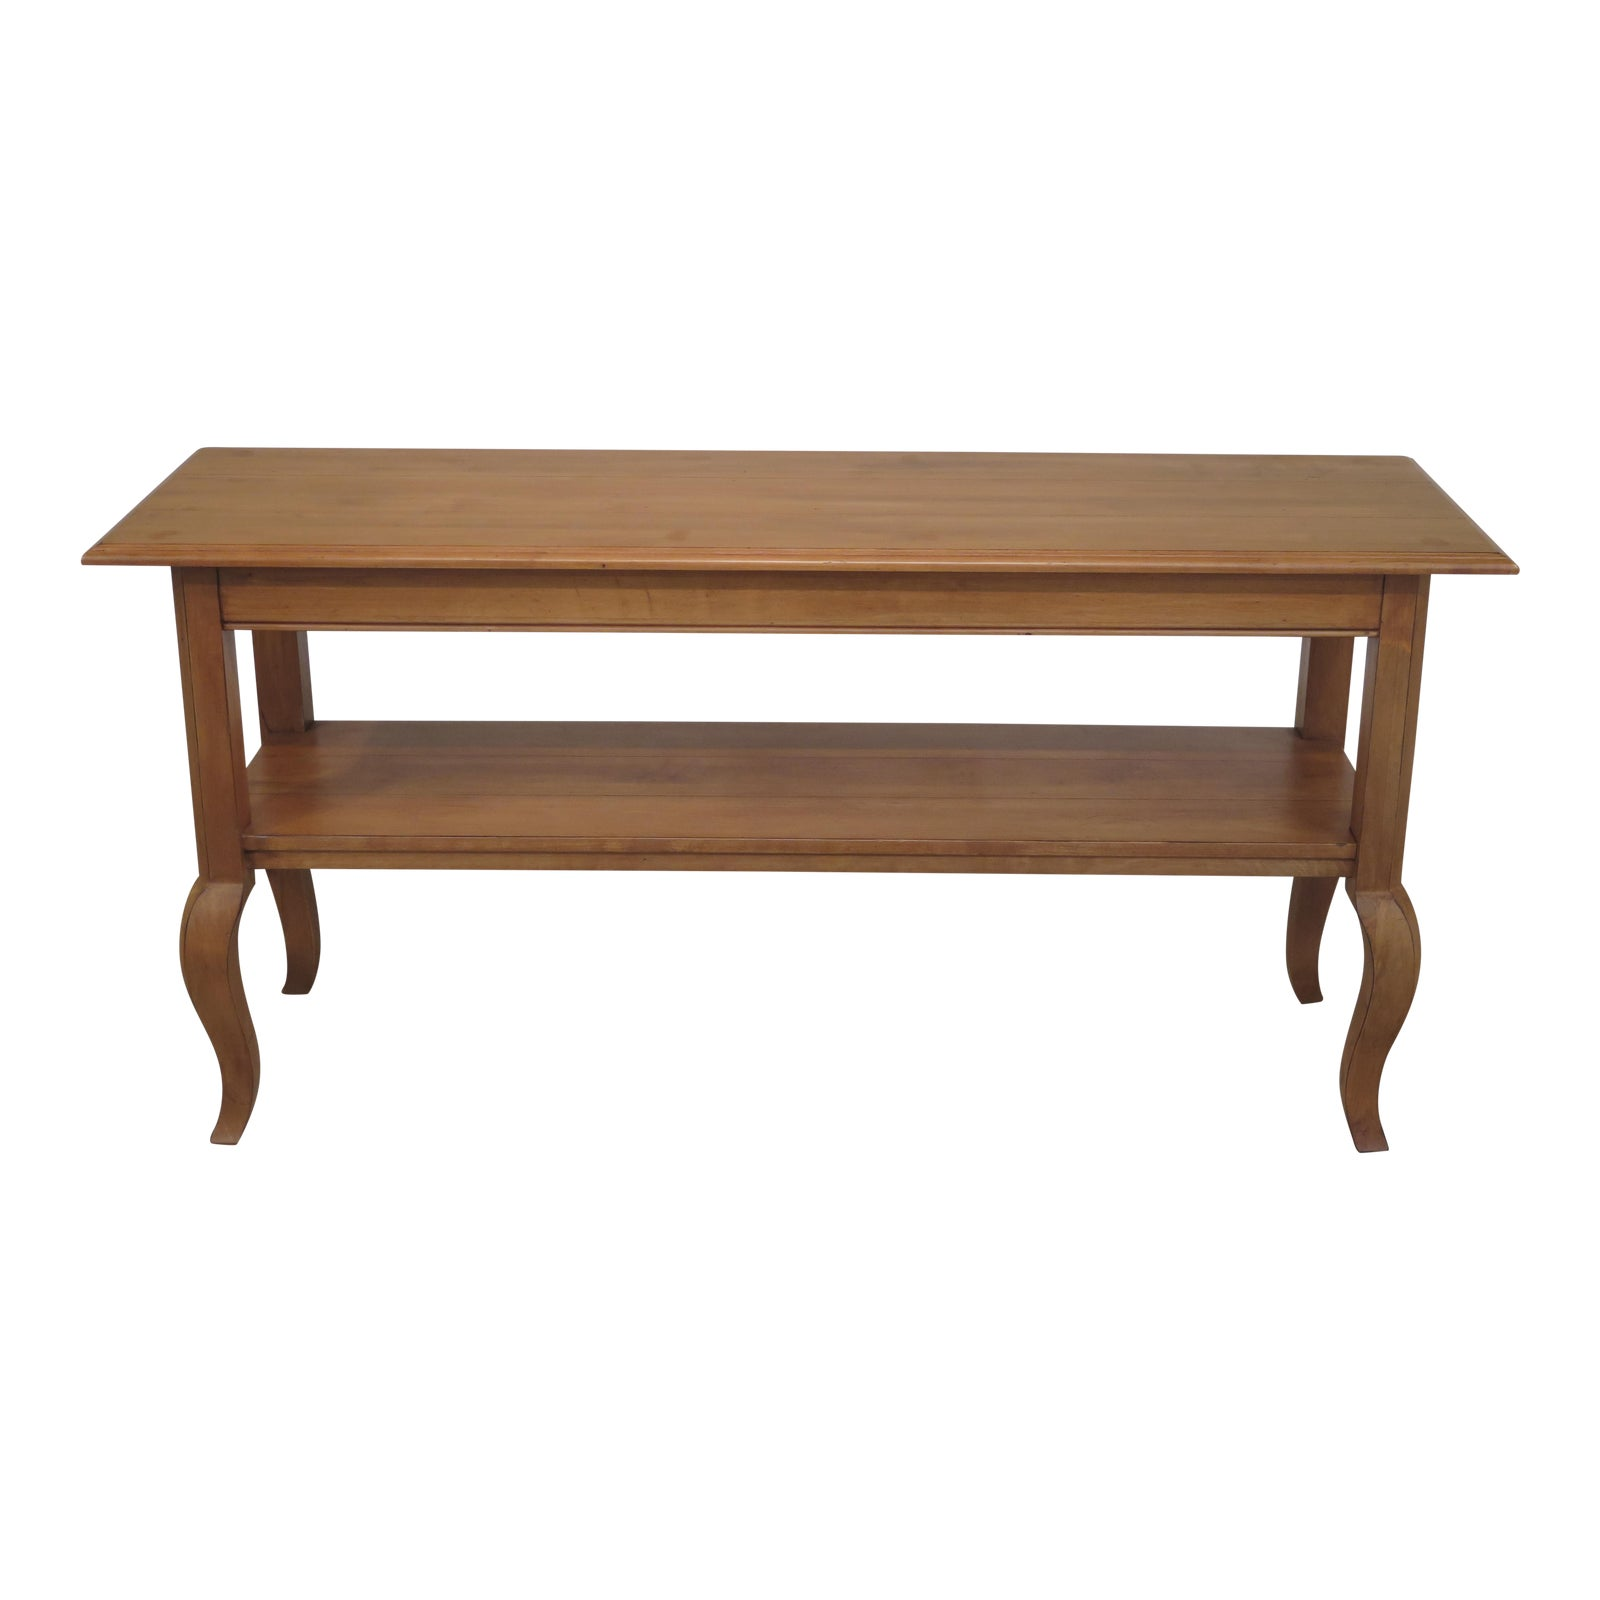 Ethan Allen New Country Coffee Table: Ethan Allen Legacy Collection Country French Sofa Table